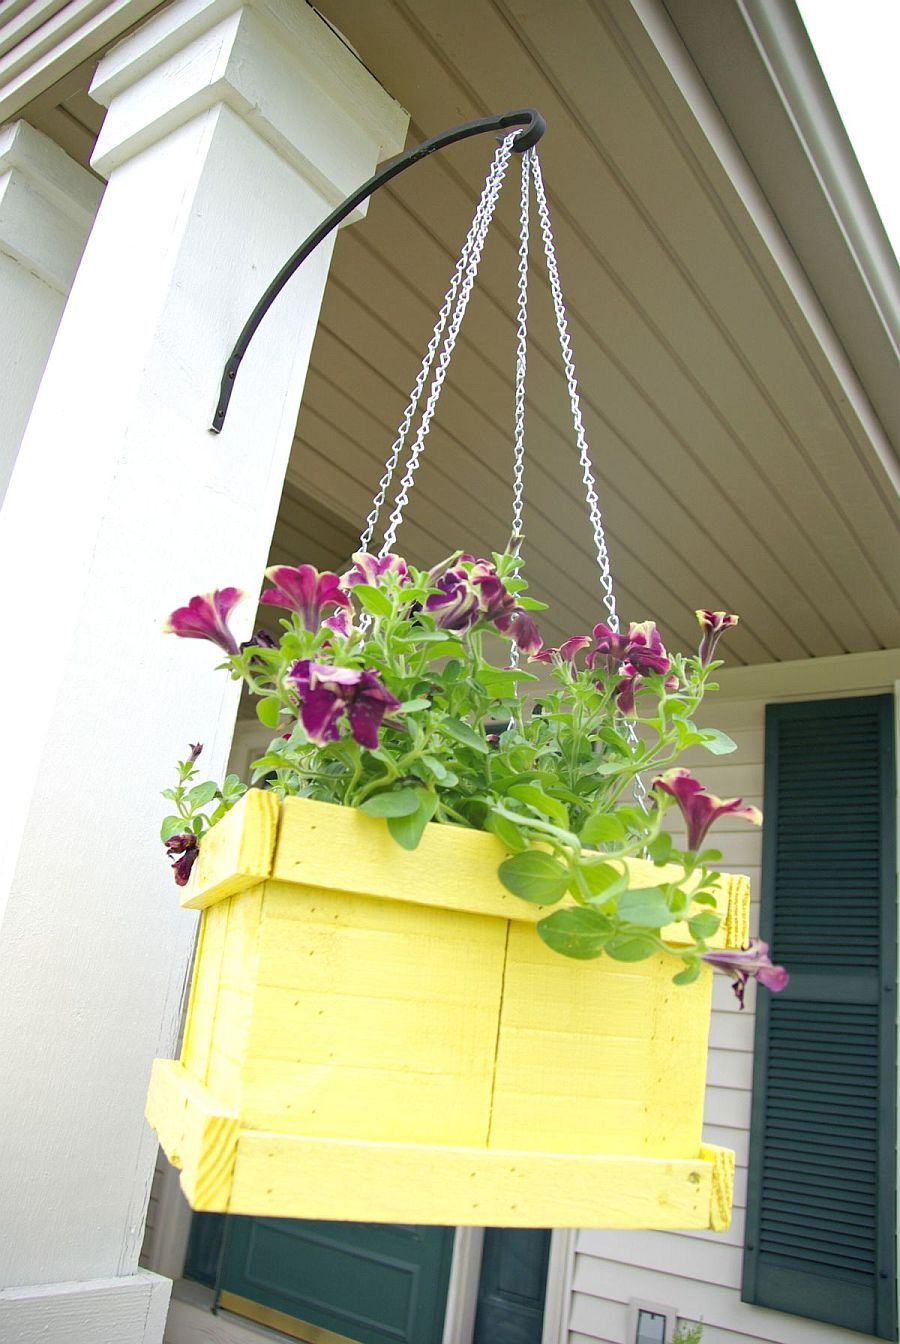 Hanging DIY planters with flowers can be placed anywhere